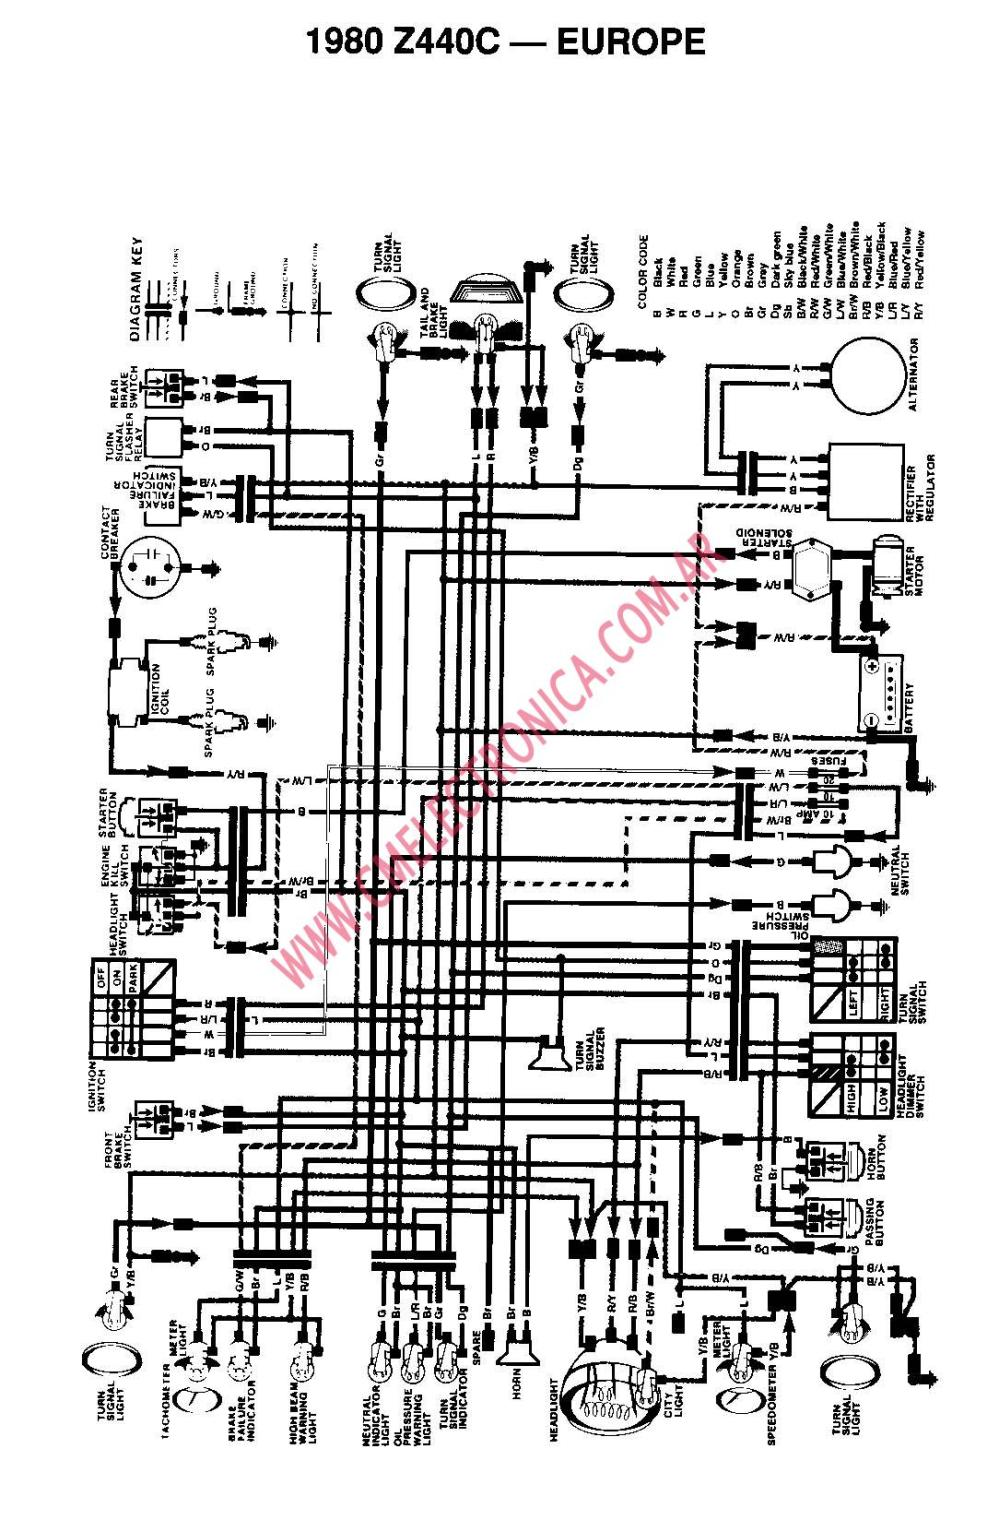 medium resolution of klf 300 wiring diagram wiring diagram todays rh 2 17 8 1813weddingbarn com kawasaki prairie 300 wiring diagram 1986 kawasaki bayou 300 wiring diagram